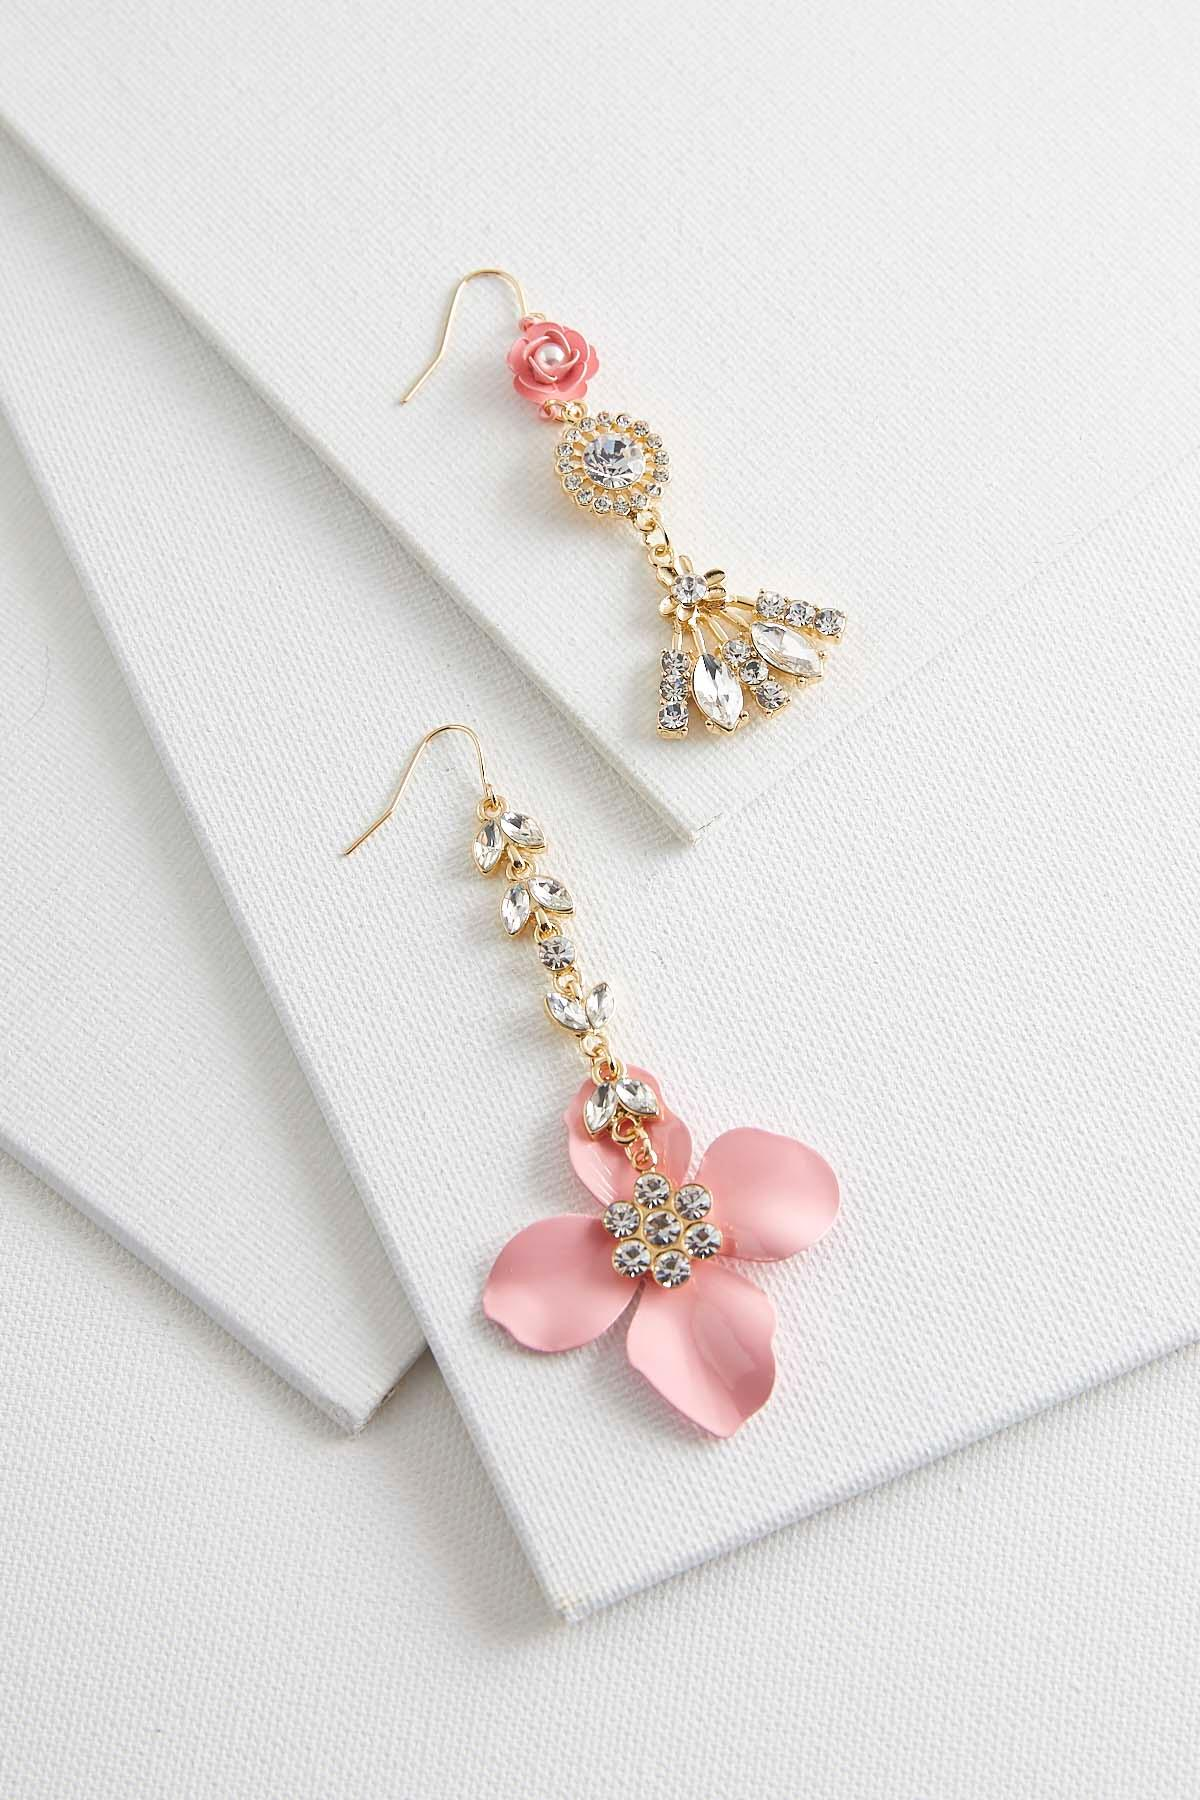 Mix Match Flower Earrings